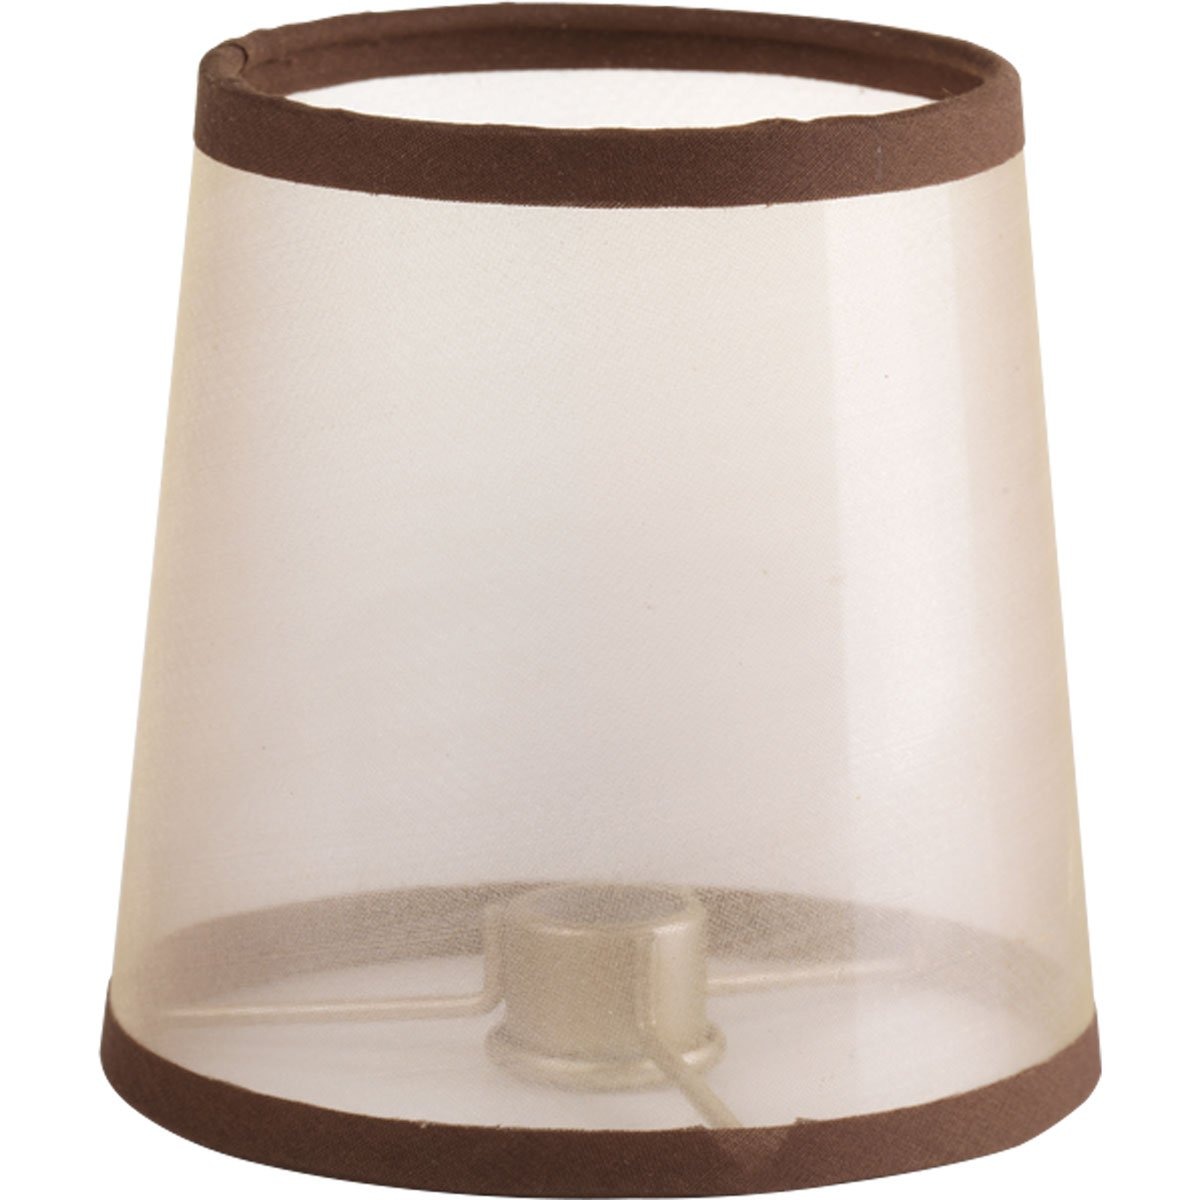 Progress Lighting P860001-001 Allaire Collection Accessory Shade, Unfinished